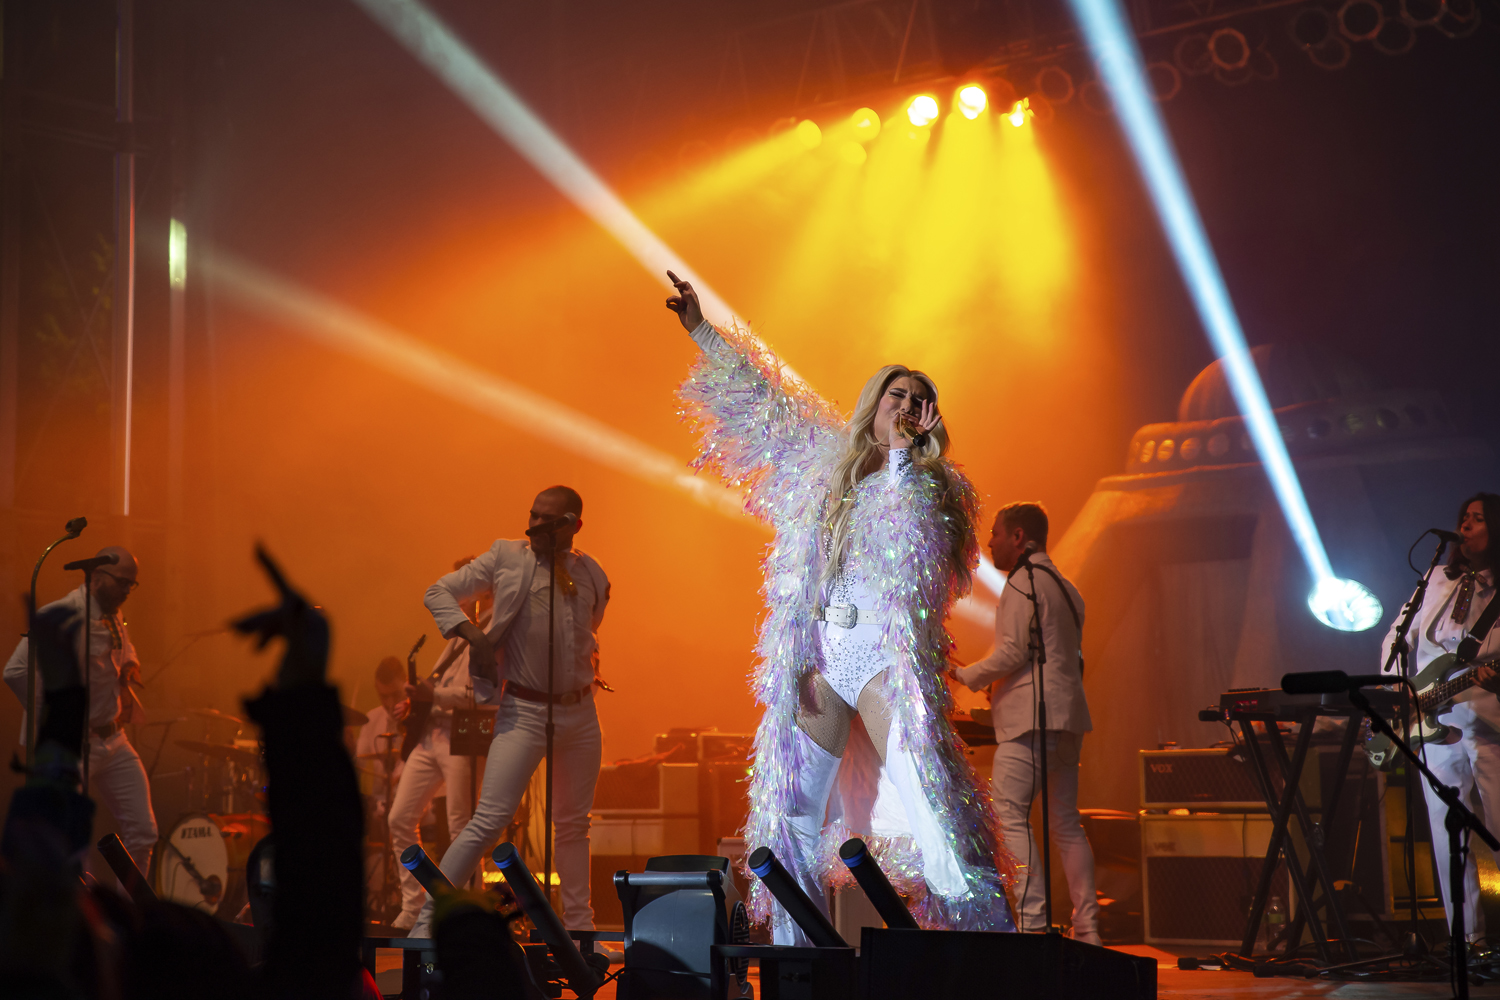 All proceeds from the Stronger than Hate concert featuring Kesha benefited the Jewish Federation's Our Victims of Terror Fund.